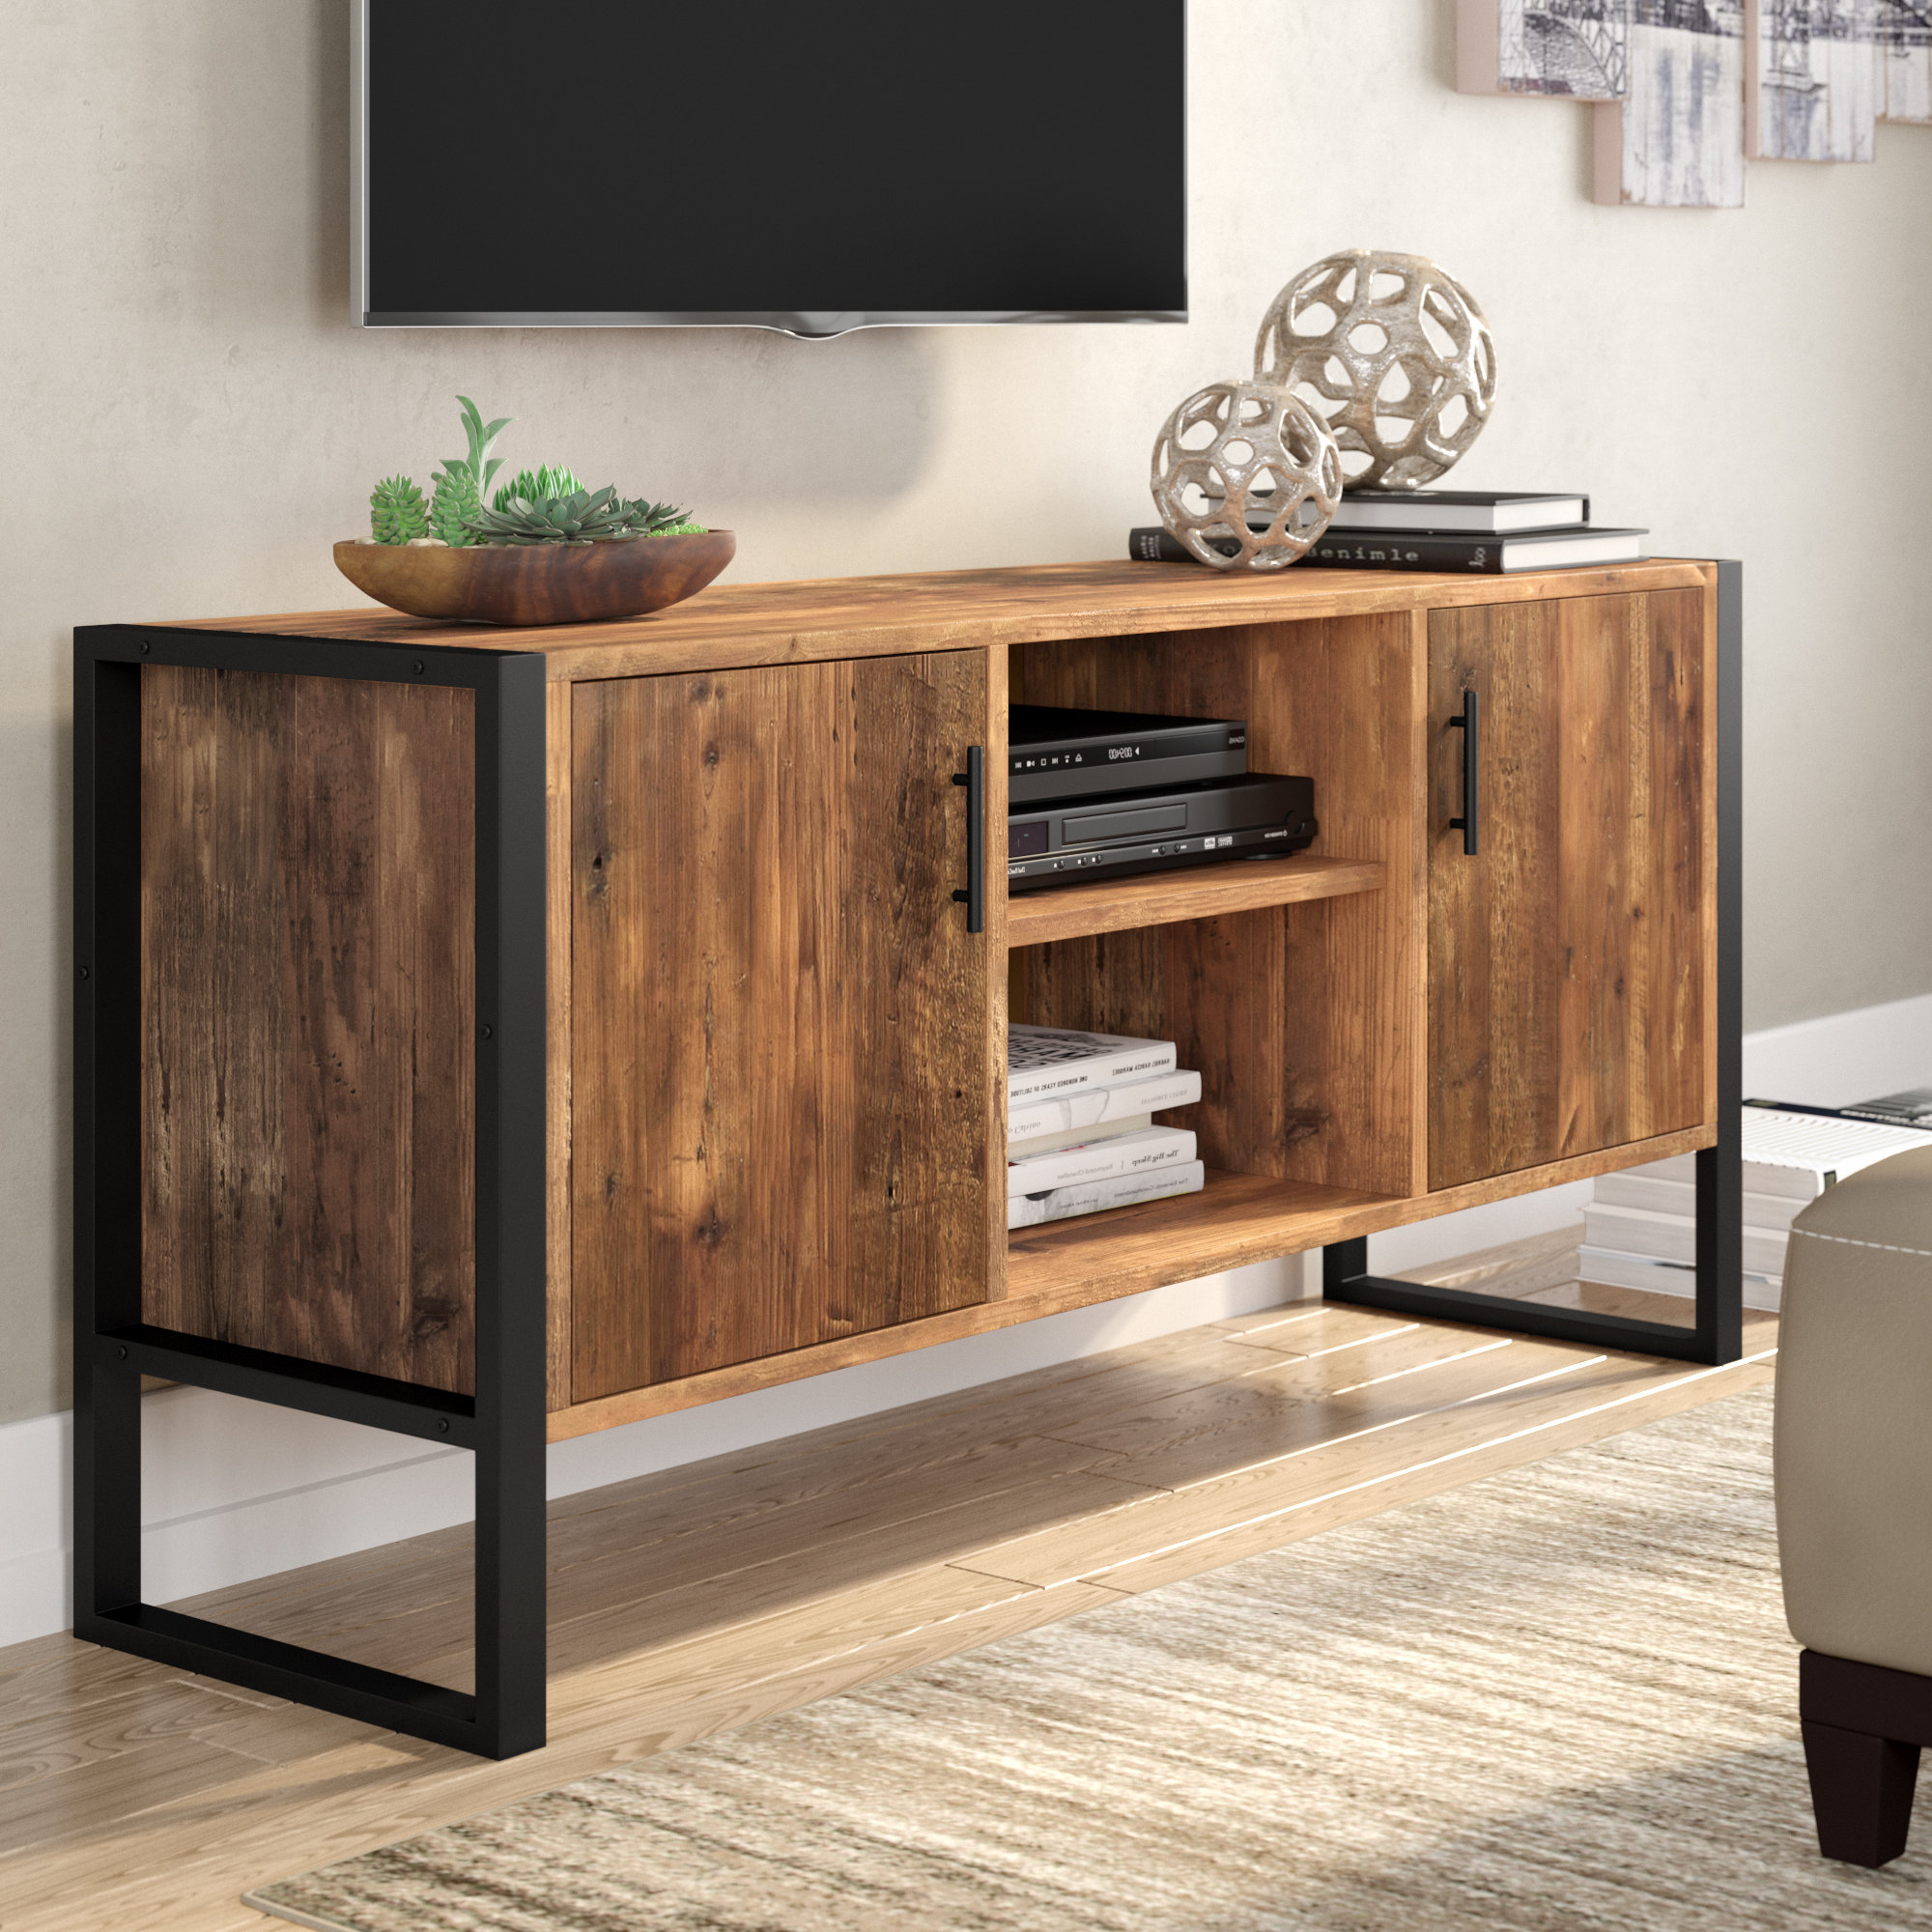 "Rochester Tv Stand For Tvs Up To 70"" & Reviews 